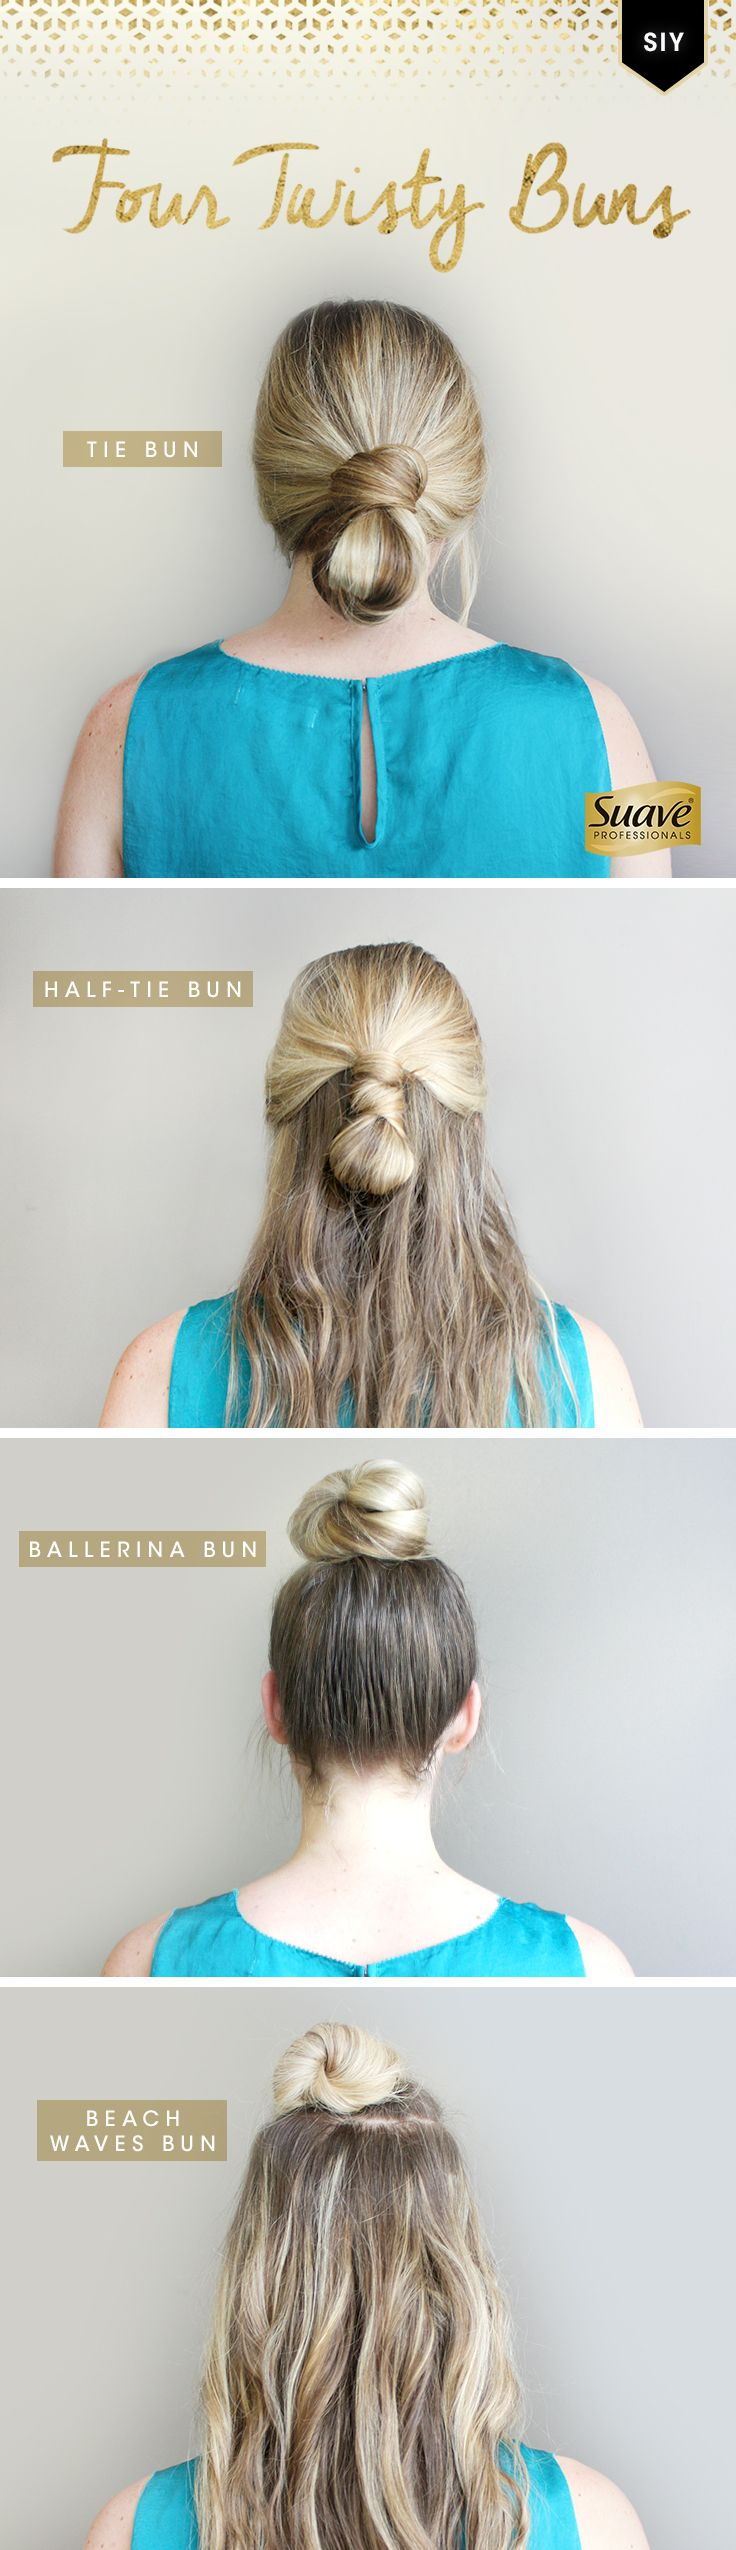 Tired of the simple sock bun? Mix it up with these easy bun hairstyles. Style It Yourself by starting with Suave Professionals Sea Mineral Infusion Moisturizing Body Shampoo and Conditioner to lock in moisture for better styling. Try a low Tie Bun for an elegant and effortless look. Wear your hair down and rock a Half-Tie Bun. A classic Ballerina Bun is a great summer hairstyle to beat the heat. An effortless Beach Waves Bun is a great date night look.